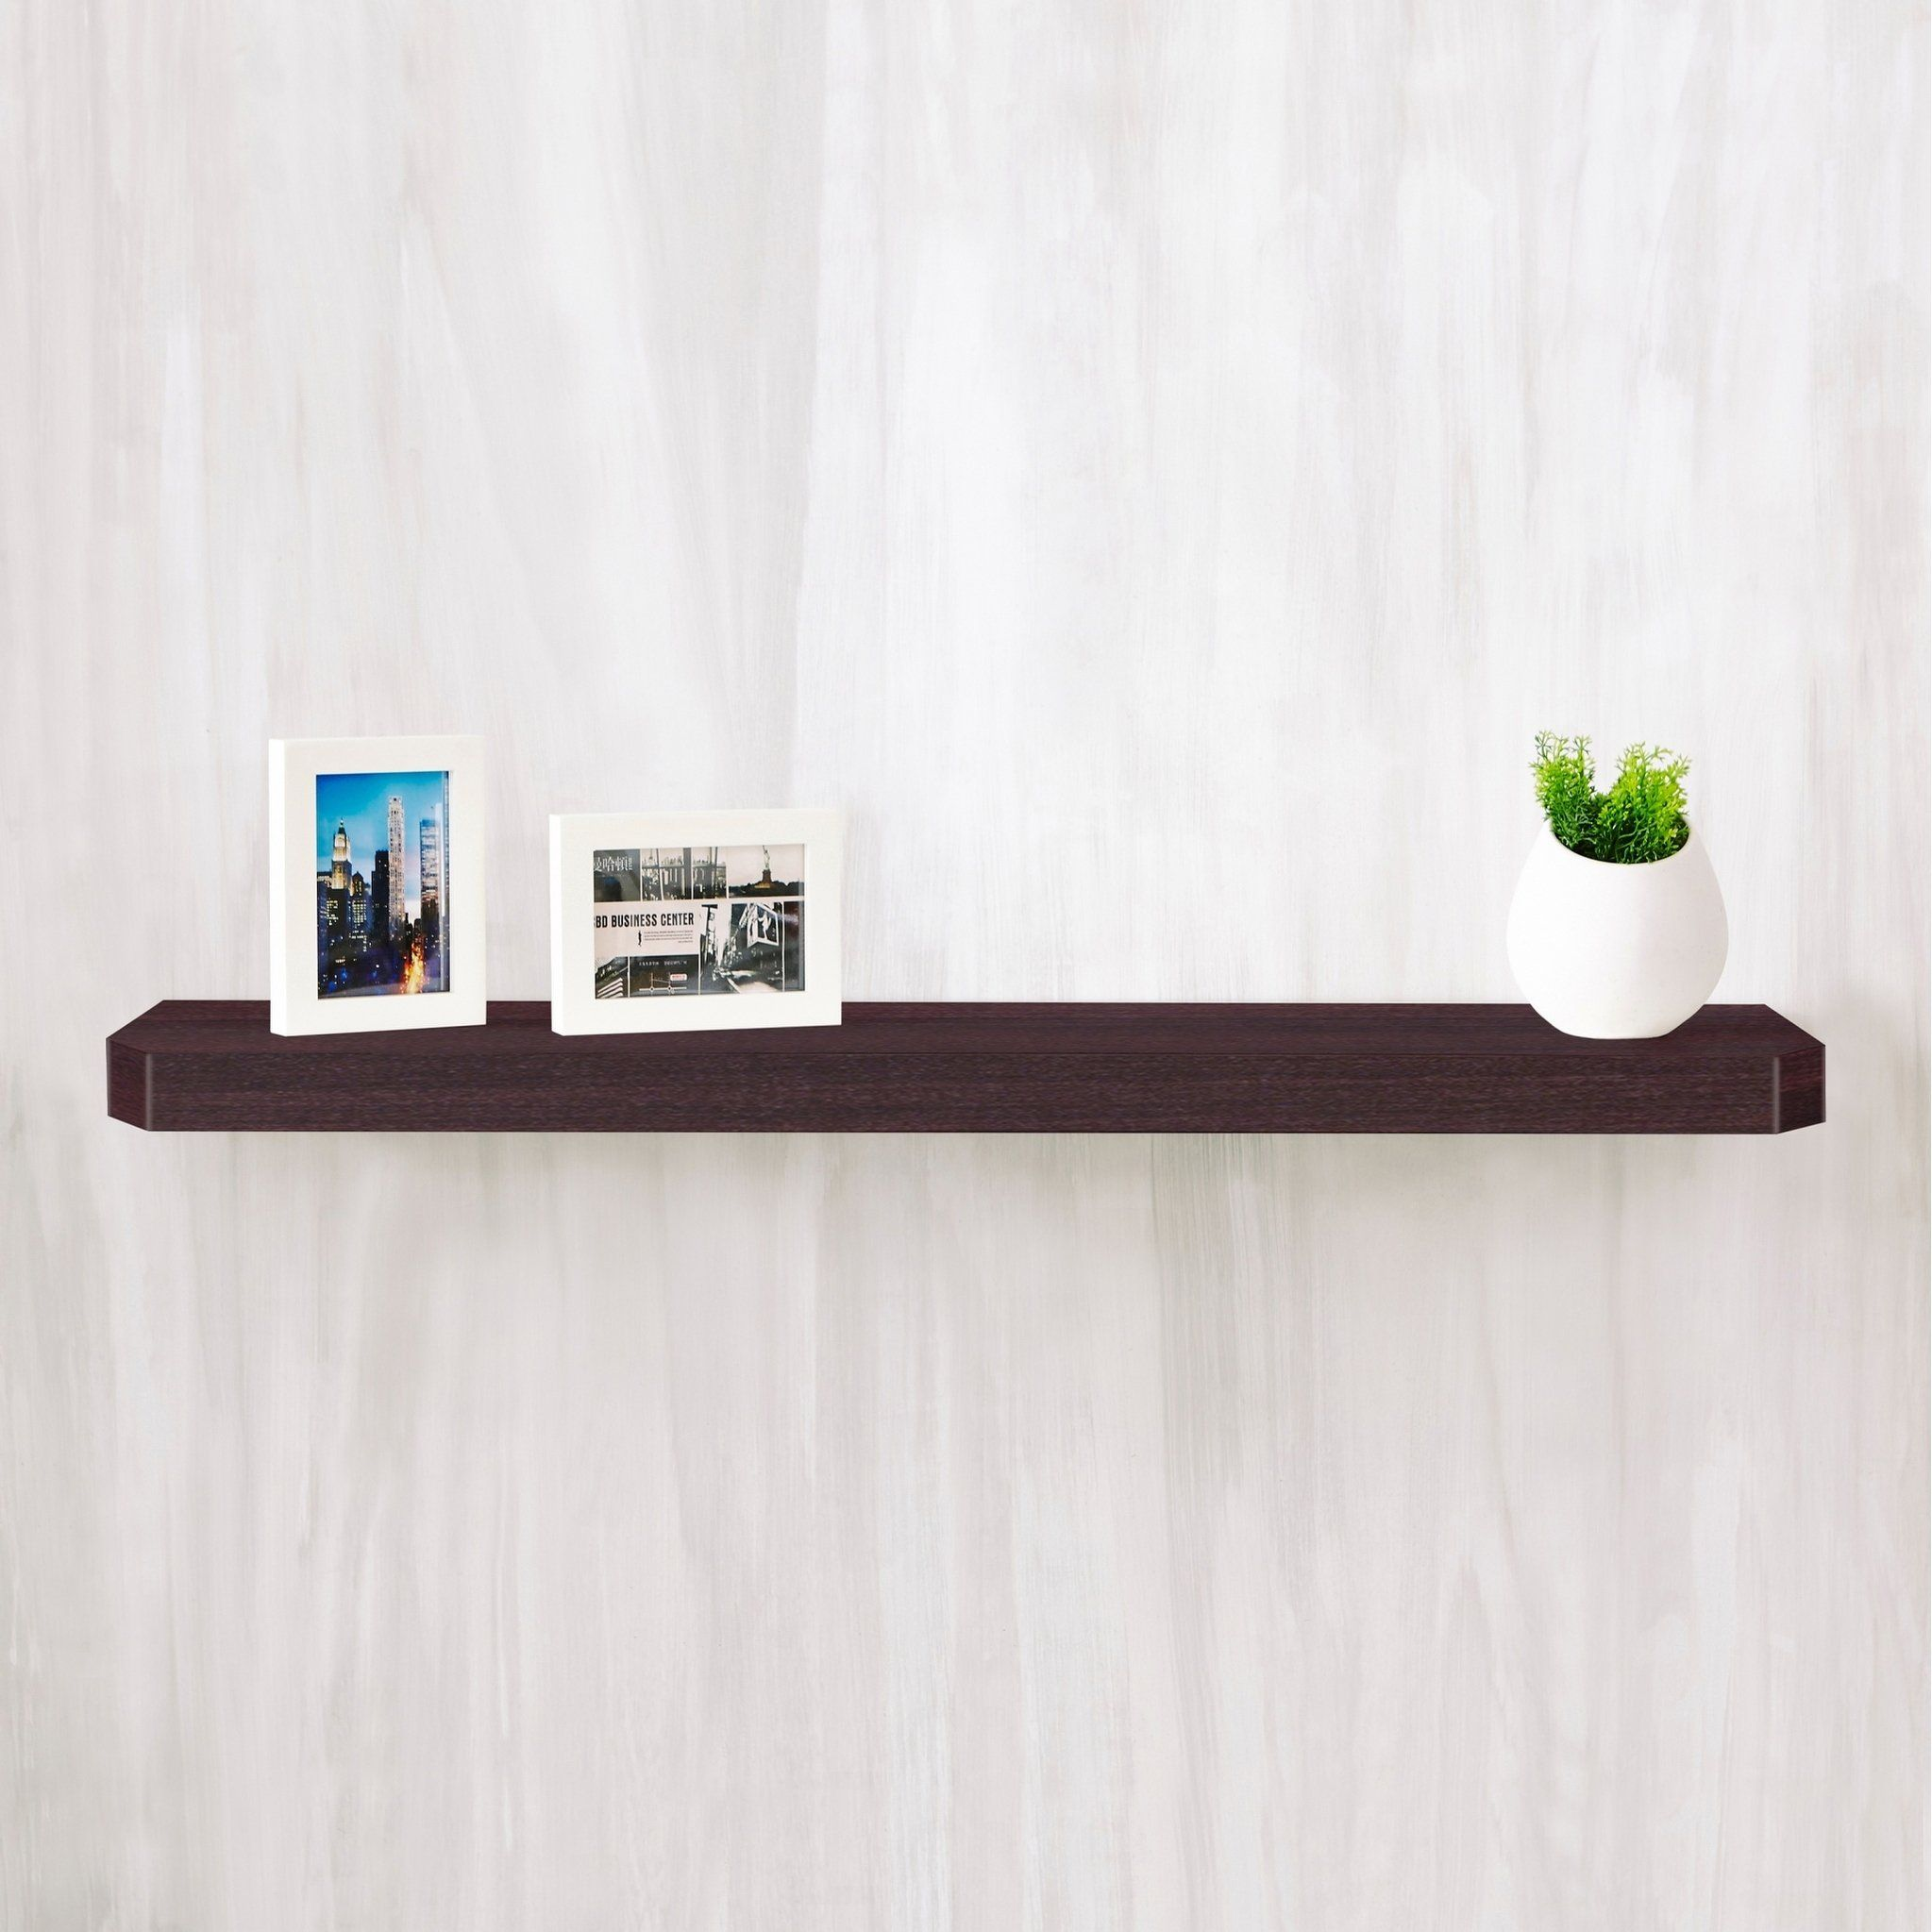 Eco 36 Uniq Floating Wall Shelf Espresso Brown Lifetime Guarantee As Is Item Way Basics In 2019 Wall Shelf Decor Floating Wall Shelves Floating Shelves